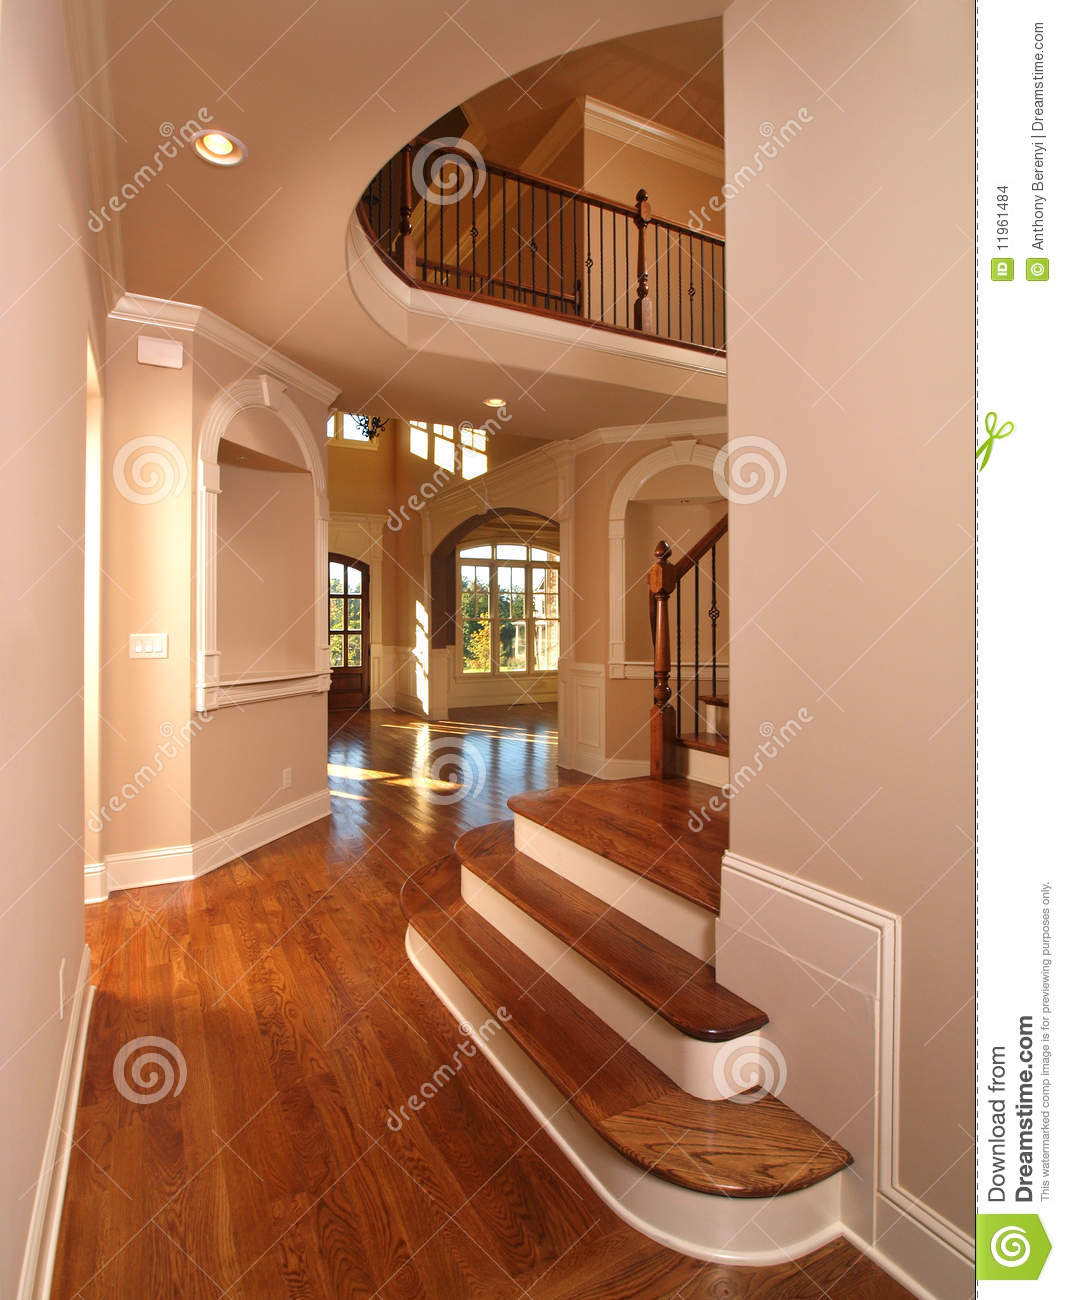 Luxury Home Interior: Model Luxury Home Interior Hallway With Stairs Stock Photo